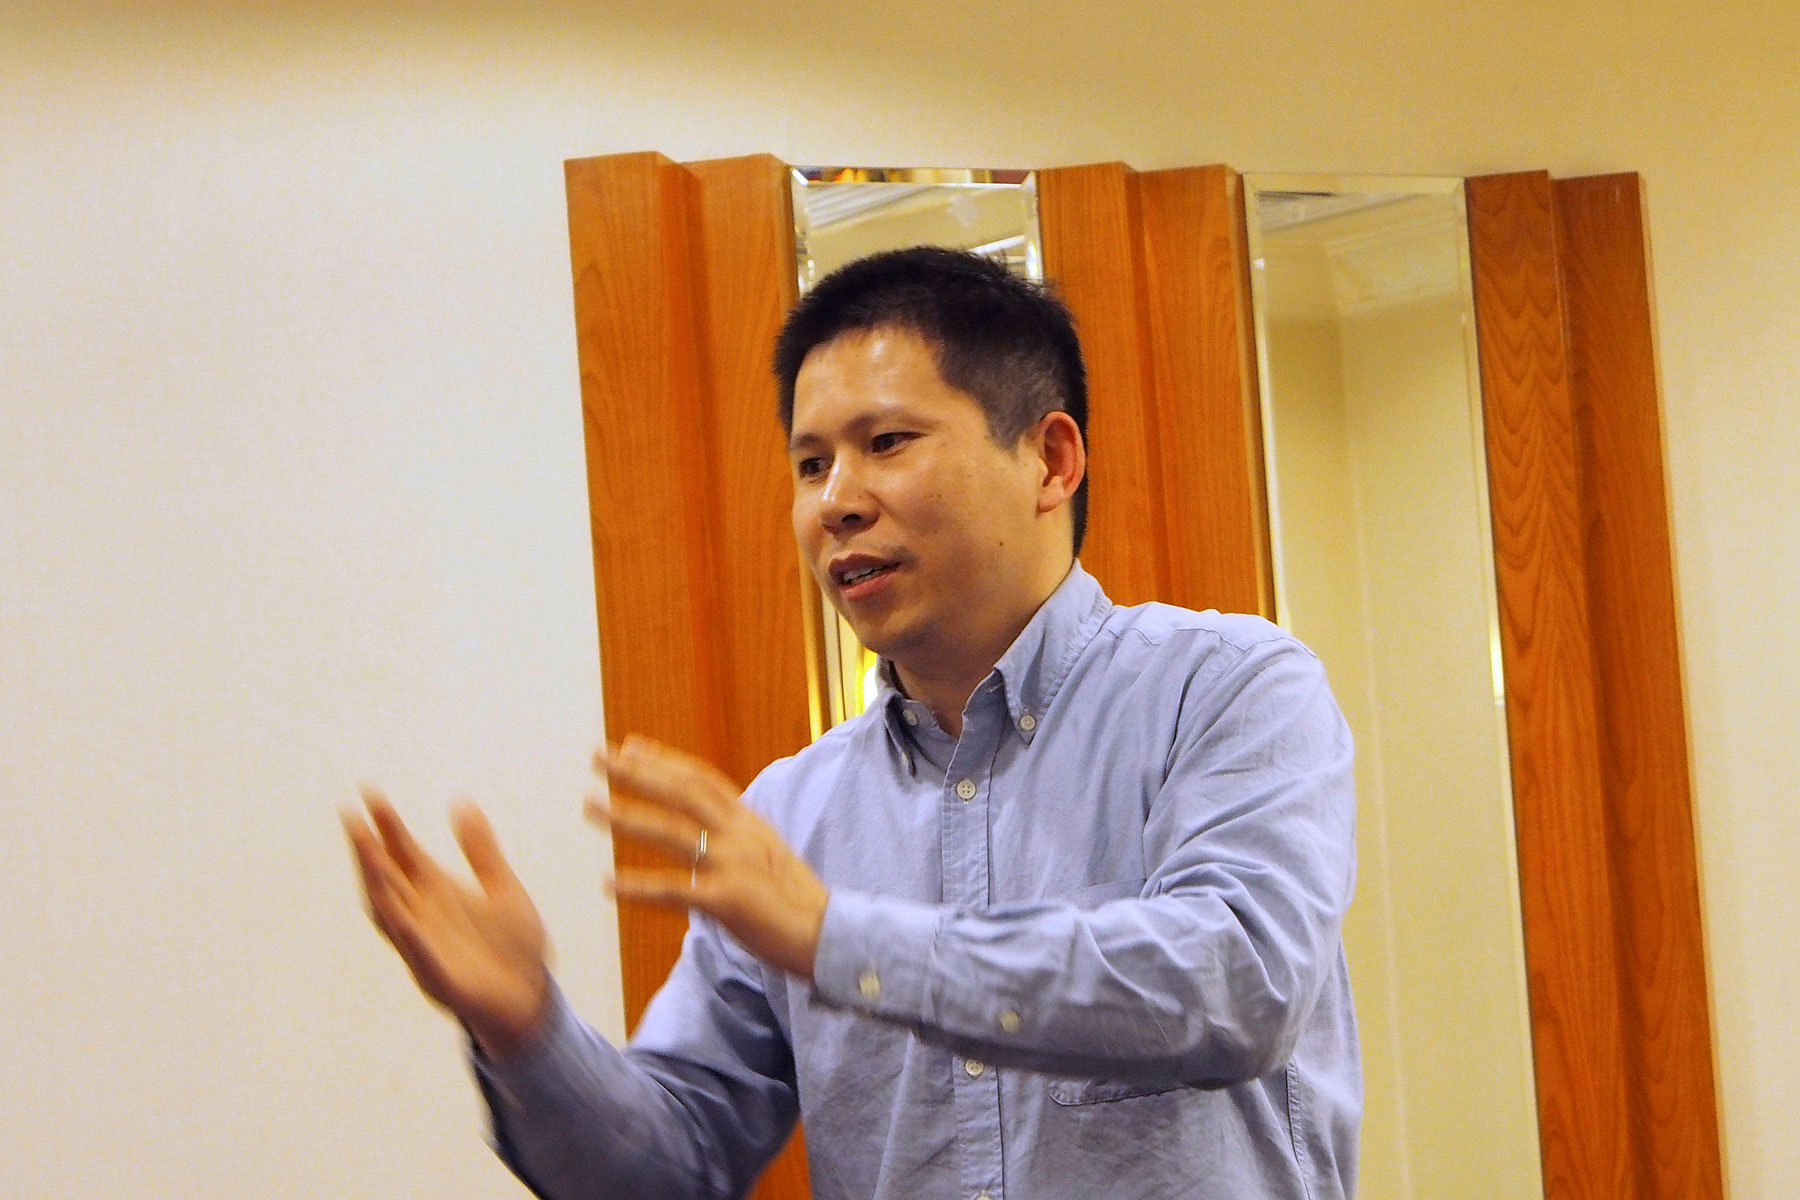 Chinese rights advocate Xu Zhiyong speaks during a meeting in Beijing in this handout photo dated March 30, 2013